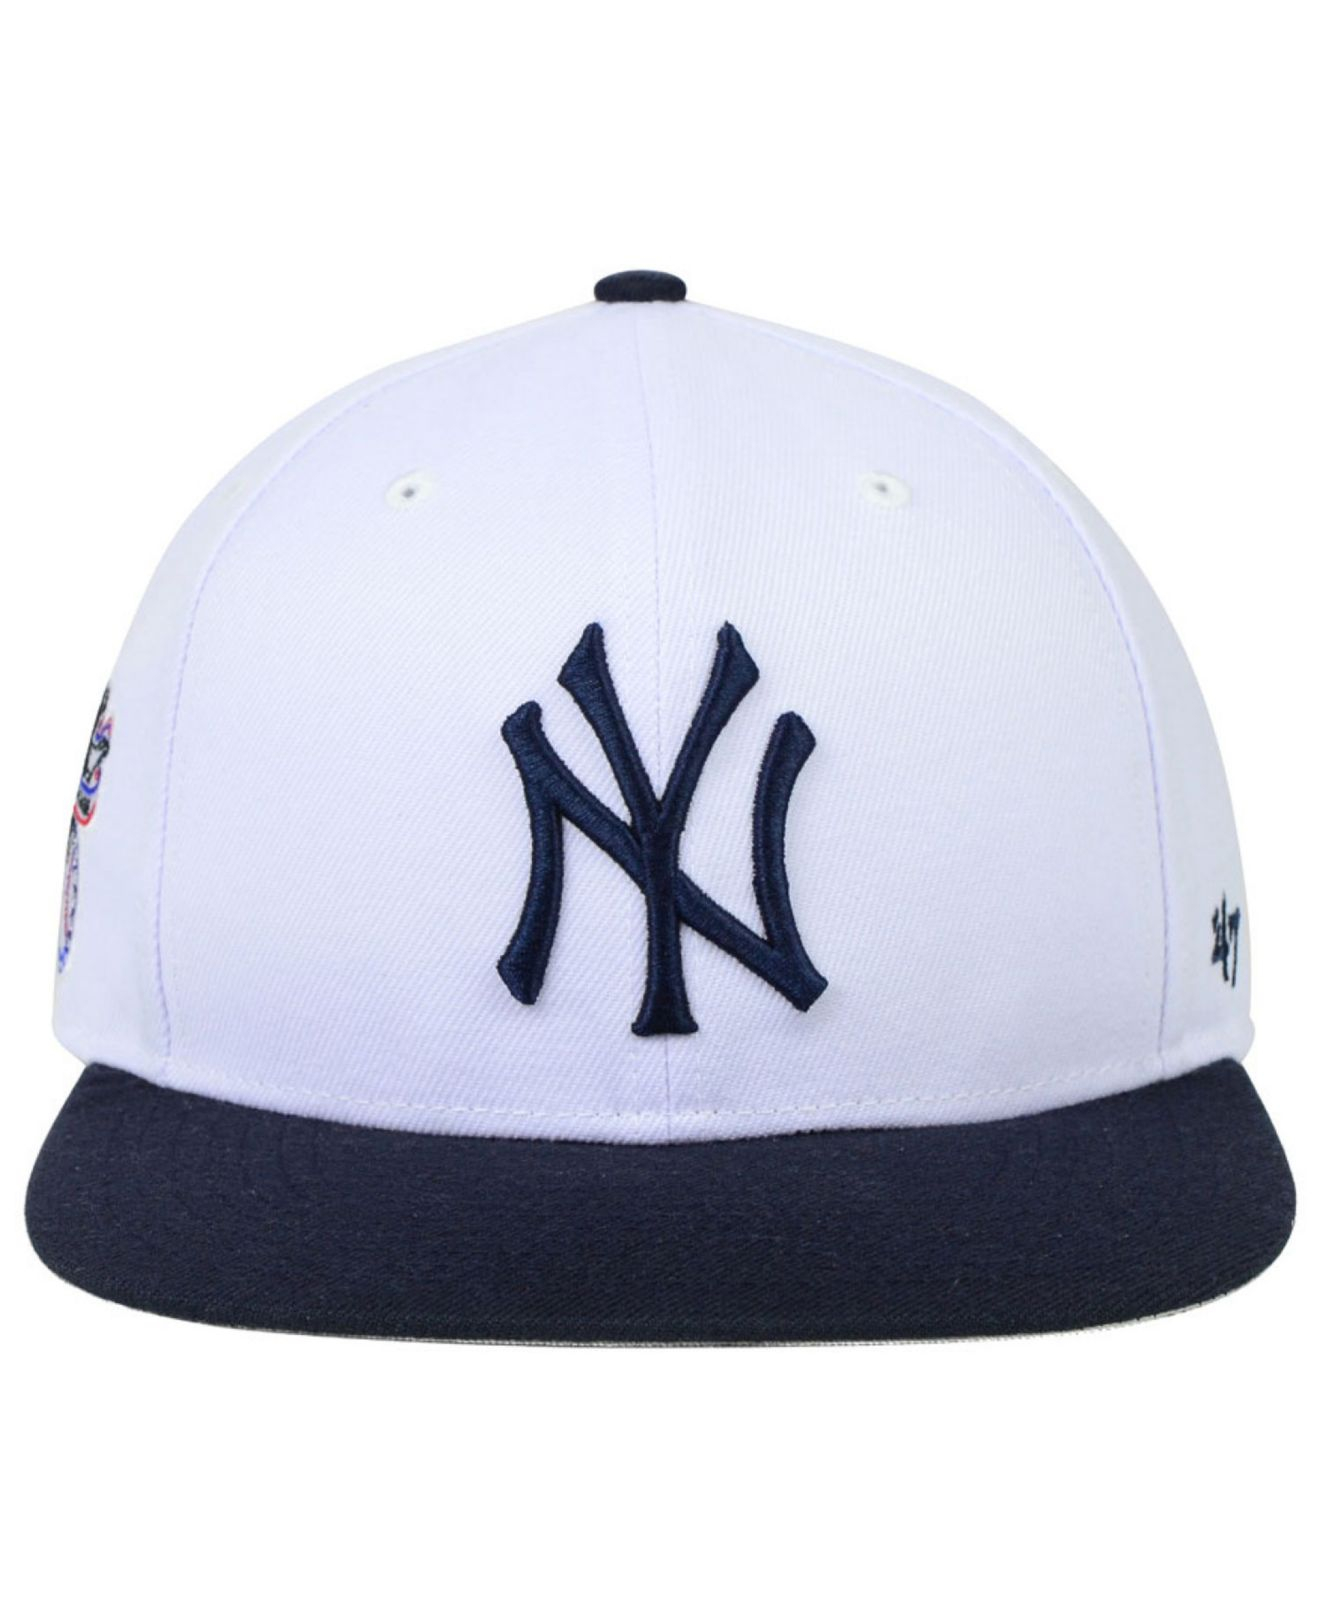 06508306edda2b 47 Brand New York Yankees Sure Shot Snapback Cap in White for Men - Lyst